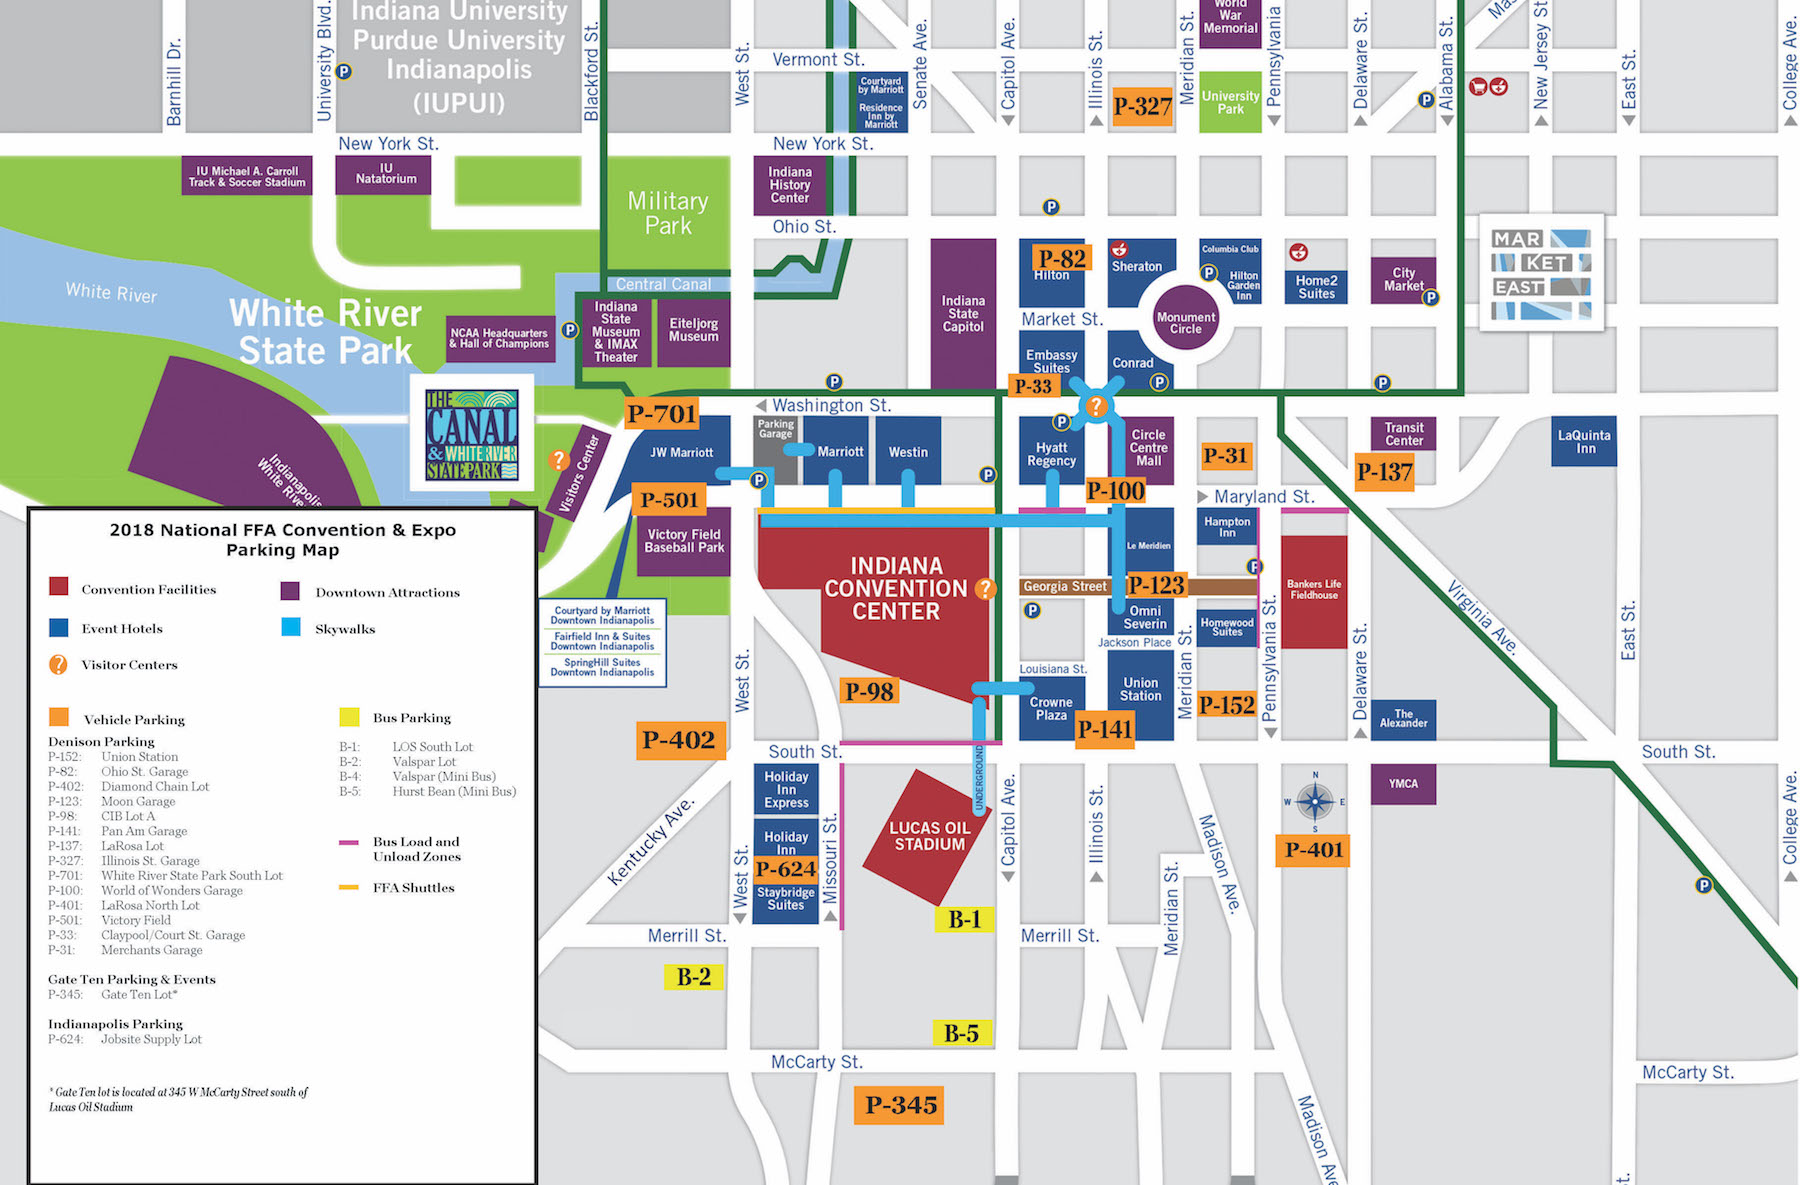 Convention Center Map Indianapolis Parking on indianapolis bar map, circle center mall parking map, indianapolis circle city mall, indianapolis stadium map, indianapolis mall map, indianapolis area map counties, indianapolis education map, indianapolis city council map, louisville ky expo center map, indianapolis culture, indianapolis construction map, indianapolis apartments map, indianapolis fair, indianapolis school map, indianapolis hotels, indianapolis beach map, indianapolis capitol map, indianapolis marriott downtown bar, downtown indianapolis map, indianapolis tourism map,